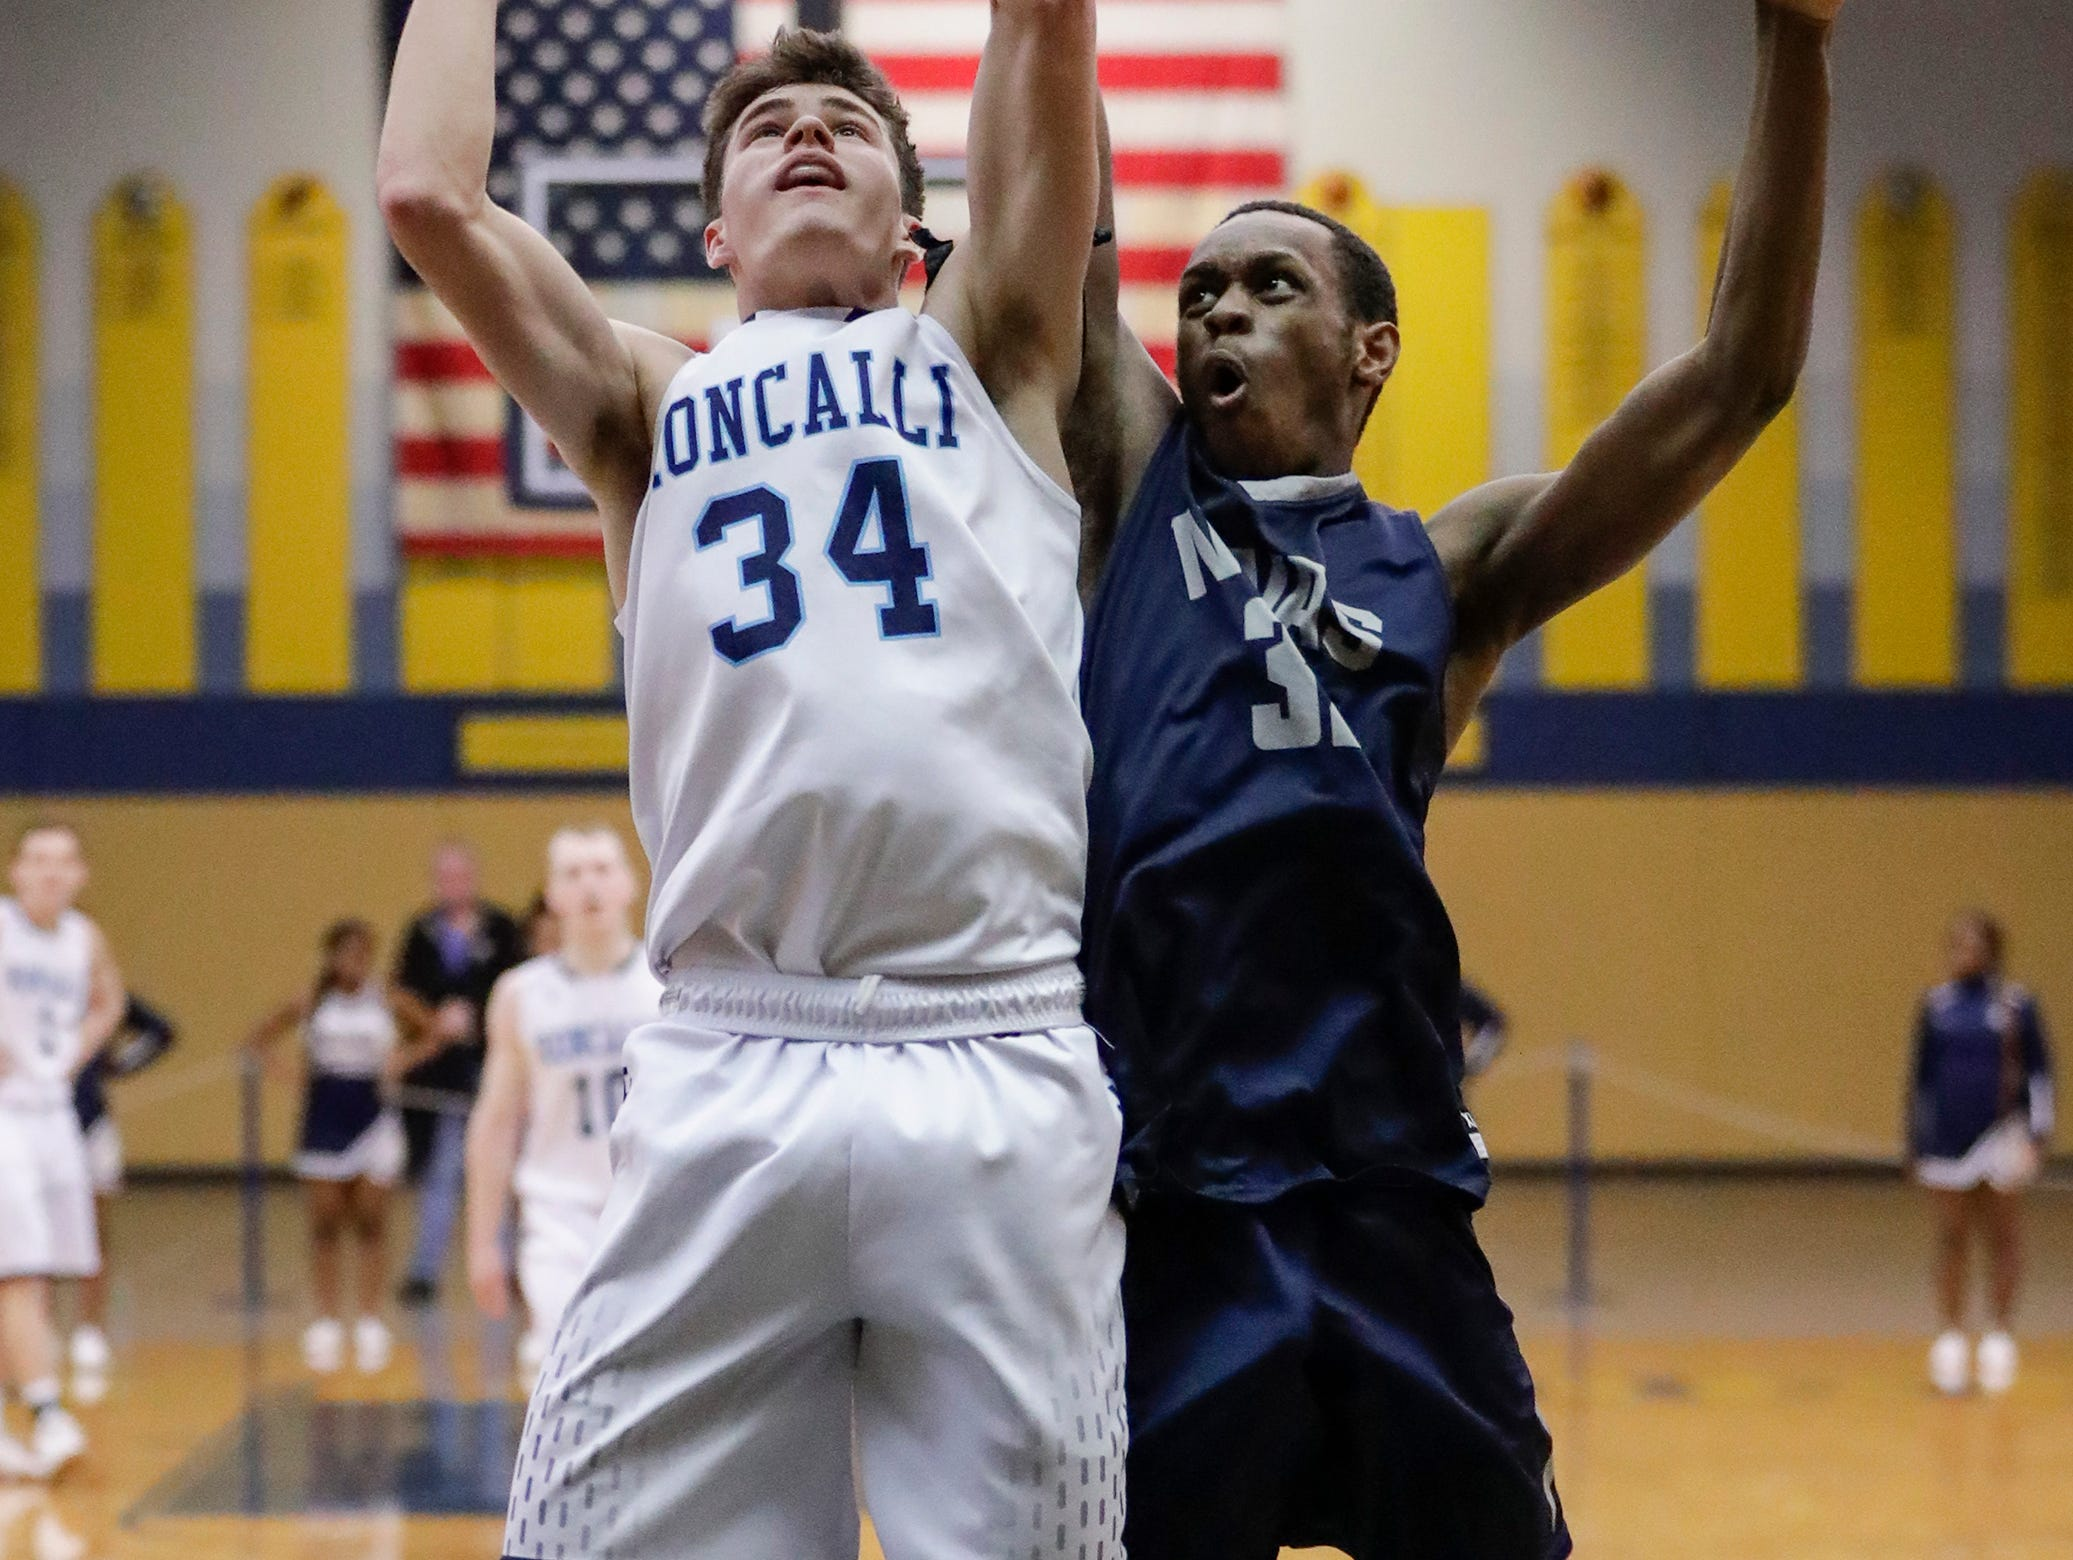 Roncalli's Ian Behringer (34) takes it to the basket against Milwaukee Academy of Science's Anthony Rose (32) during a WIAA Division 4 sectional championship at Sheboygan North High School Saturday, March 9, 2019, in Sheboygan, Wis. Joshua Clark/USA TODAY NETWORK-Wisconsin